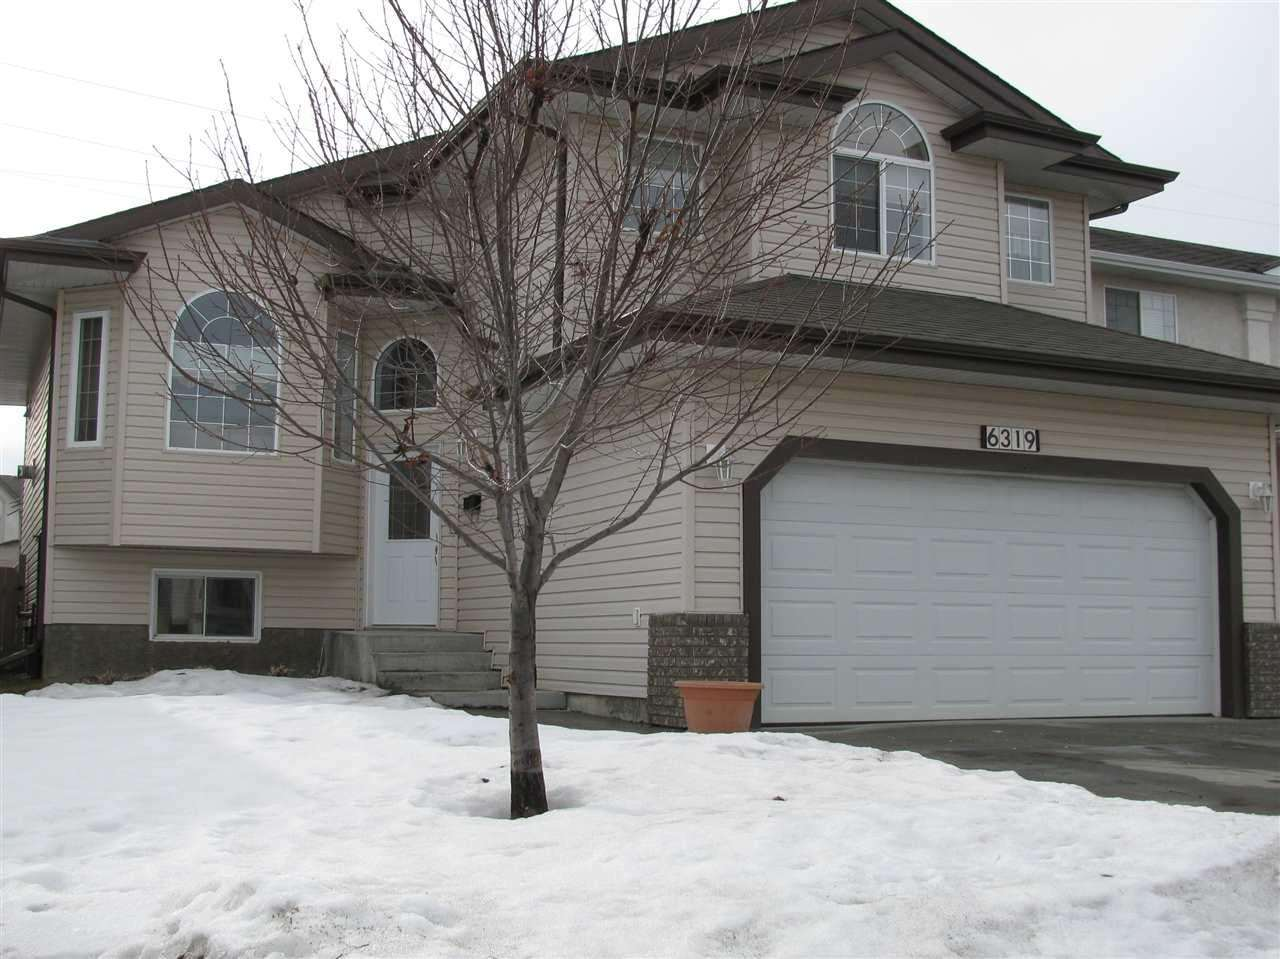 Absolutely stunning Bilevel with 4 bedroom, with over 2500 sq. ft. of developed living space.  A fully finished basement with full bath, spare bedroom with huge closets including laminate flooring. A grand front entrance that opens to the upper and lower levels. Vaulted ceilings throughout main with spacious living room, cozy fireplace, open to the  kitchen with tons of Oak  cabinets! The main floor features gorgeous hardwood & ceramic floors throughout, also includes 2 spacious bedrooms with a full bath. Walk upstairs to your personal oasis to a large master bedroom, walkin closet & a 4Pc ensuite bath with jacuzzi tub! Large windows throughout flood the home with natural light! Outside the 2 tiered deck opens onto a huge yard with tidy tool shed, perfect for the kids and pets. Attached double garage dry walled, insulated and heated, perfect for parking & workshop! Close to all levels of schools, shopping and public transportation.